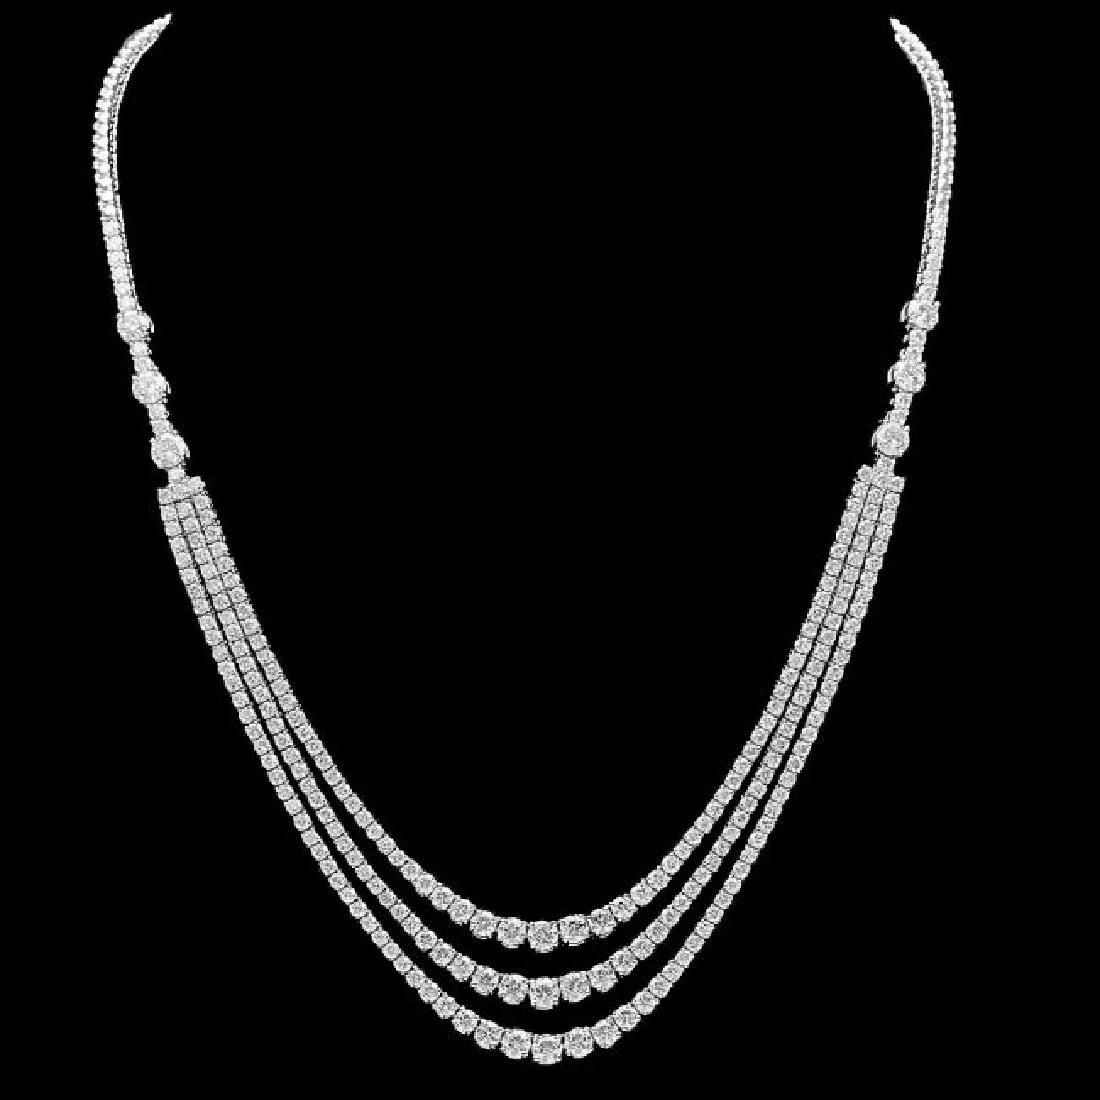 18k White Gold 12.90ct Diamond Necklace